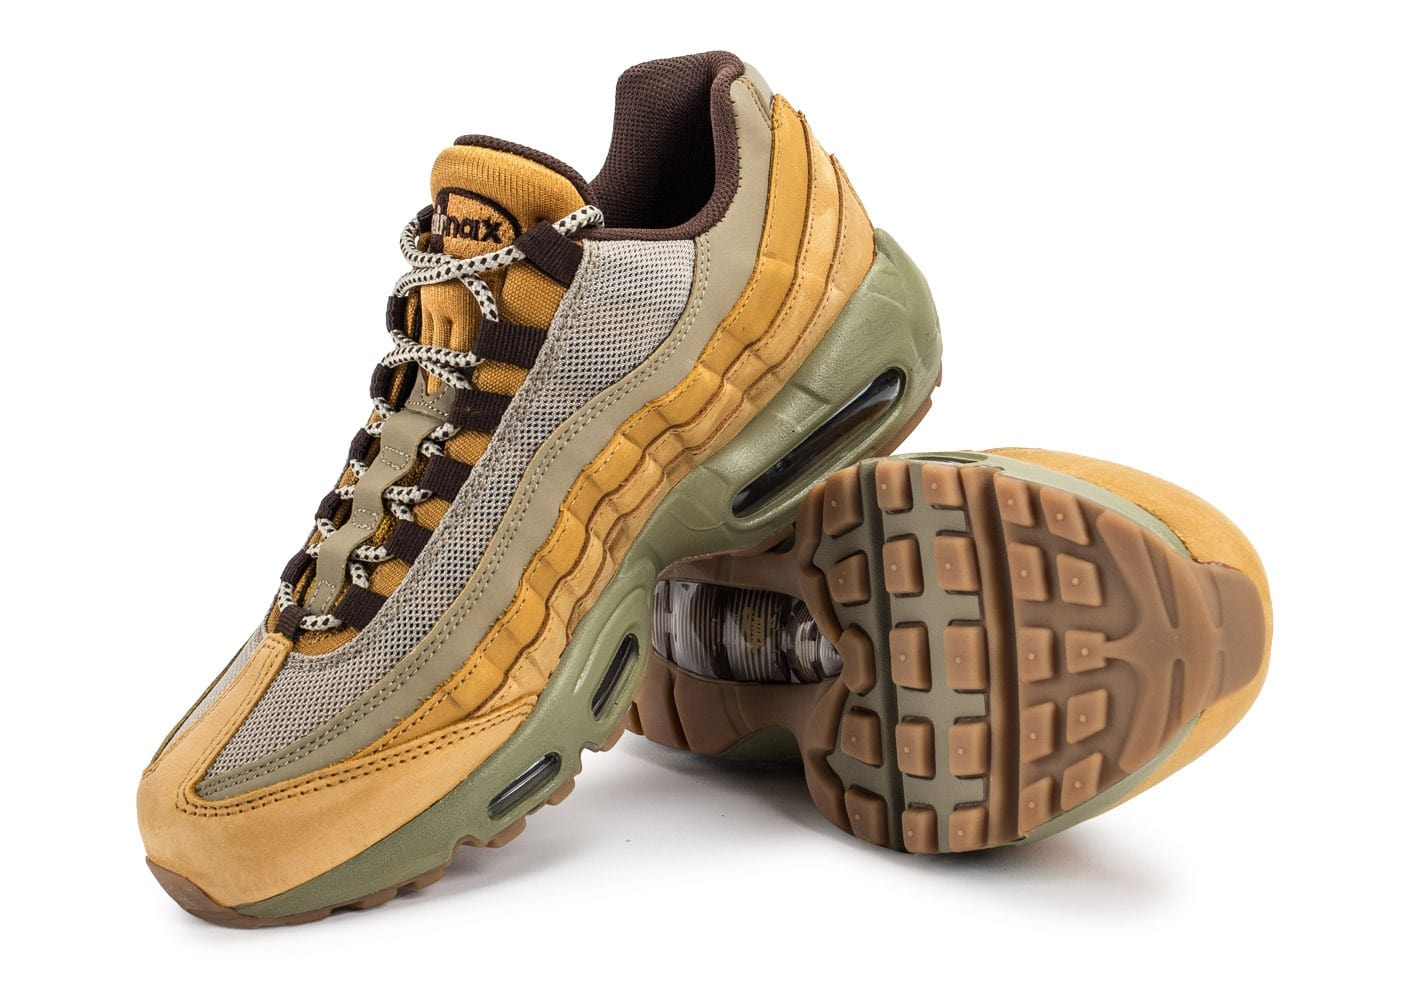 nike air max 95 prm wheat chaussures baskets homme chausport. Black Bedroom Furniture Sets. Home Design Ideas